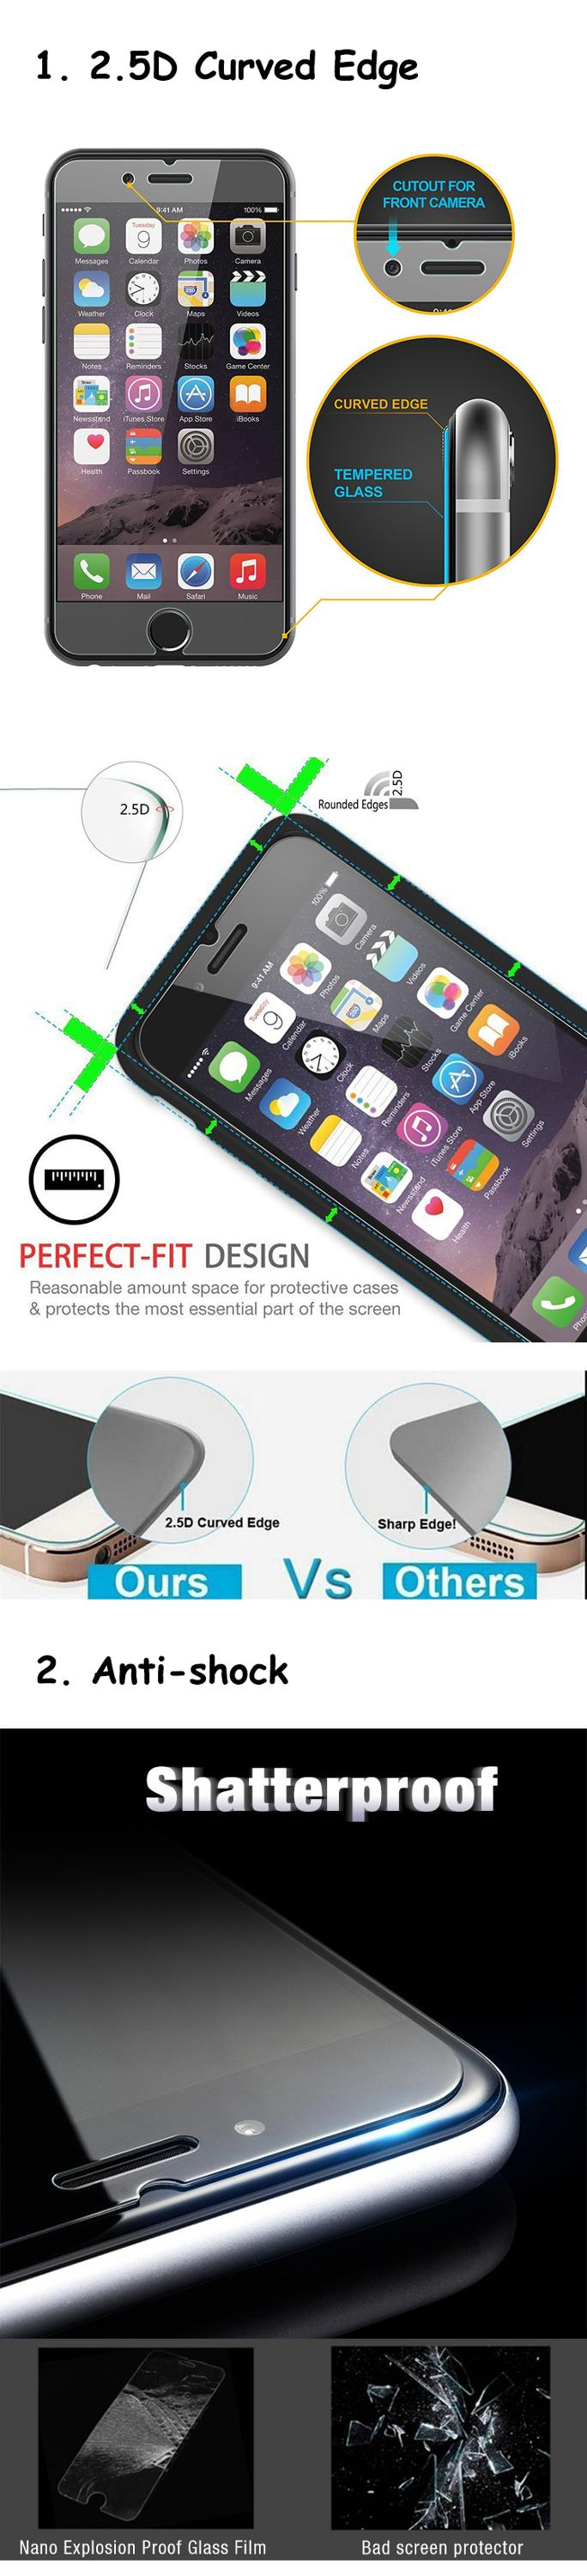 Accessories used mobile phones tempered glass screen protector for insignia flex 10.1